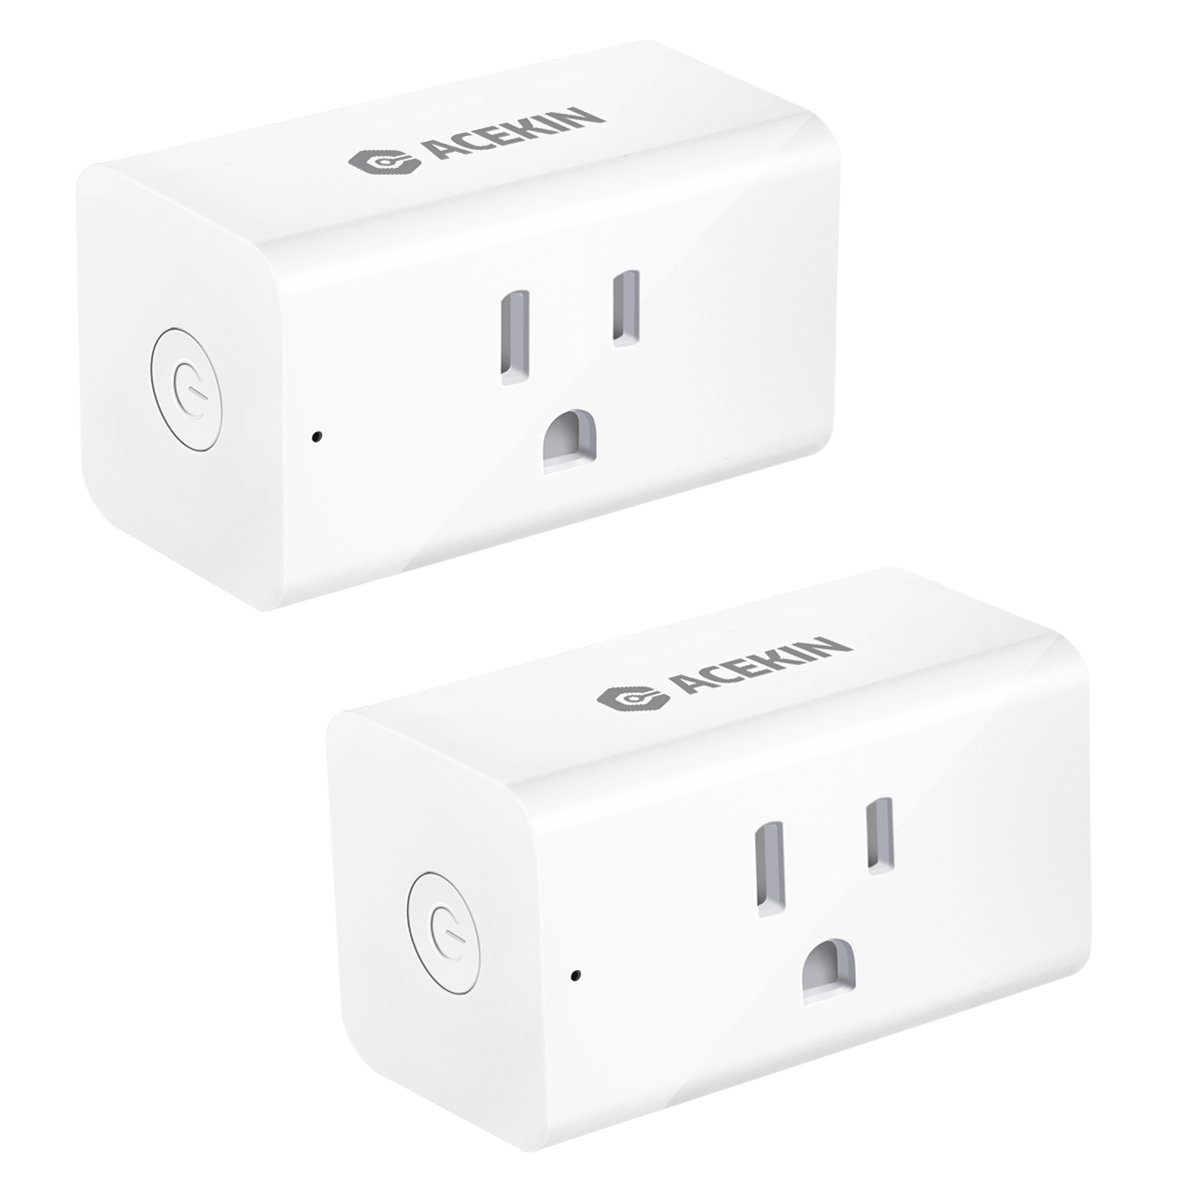 ACEKIN Smart Plug 2 Pack WiFi Smart Outlet Compatible with Amazon Alexa Google Assistant IFTTT Remote Control Your Devices (AC 110-125V/15A/MAX 1800W)